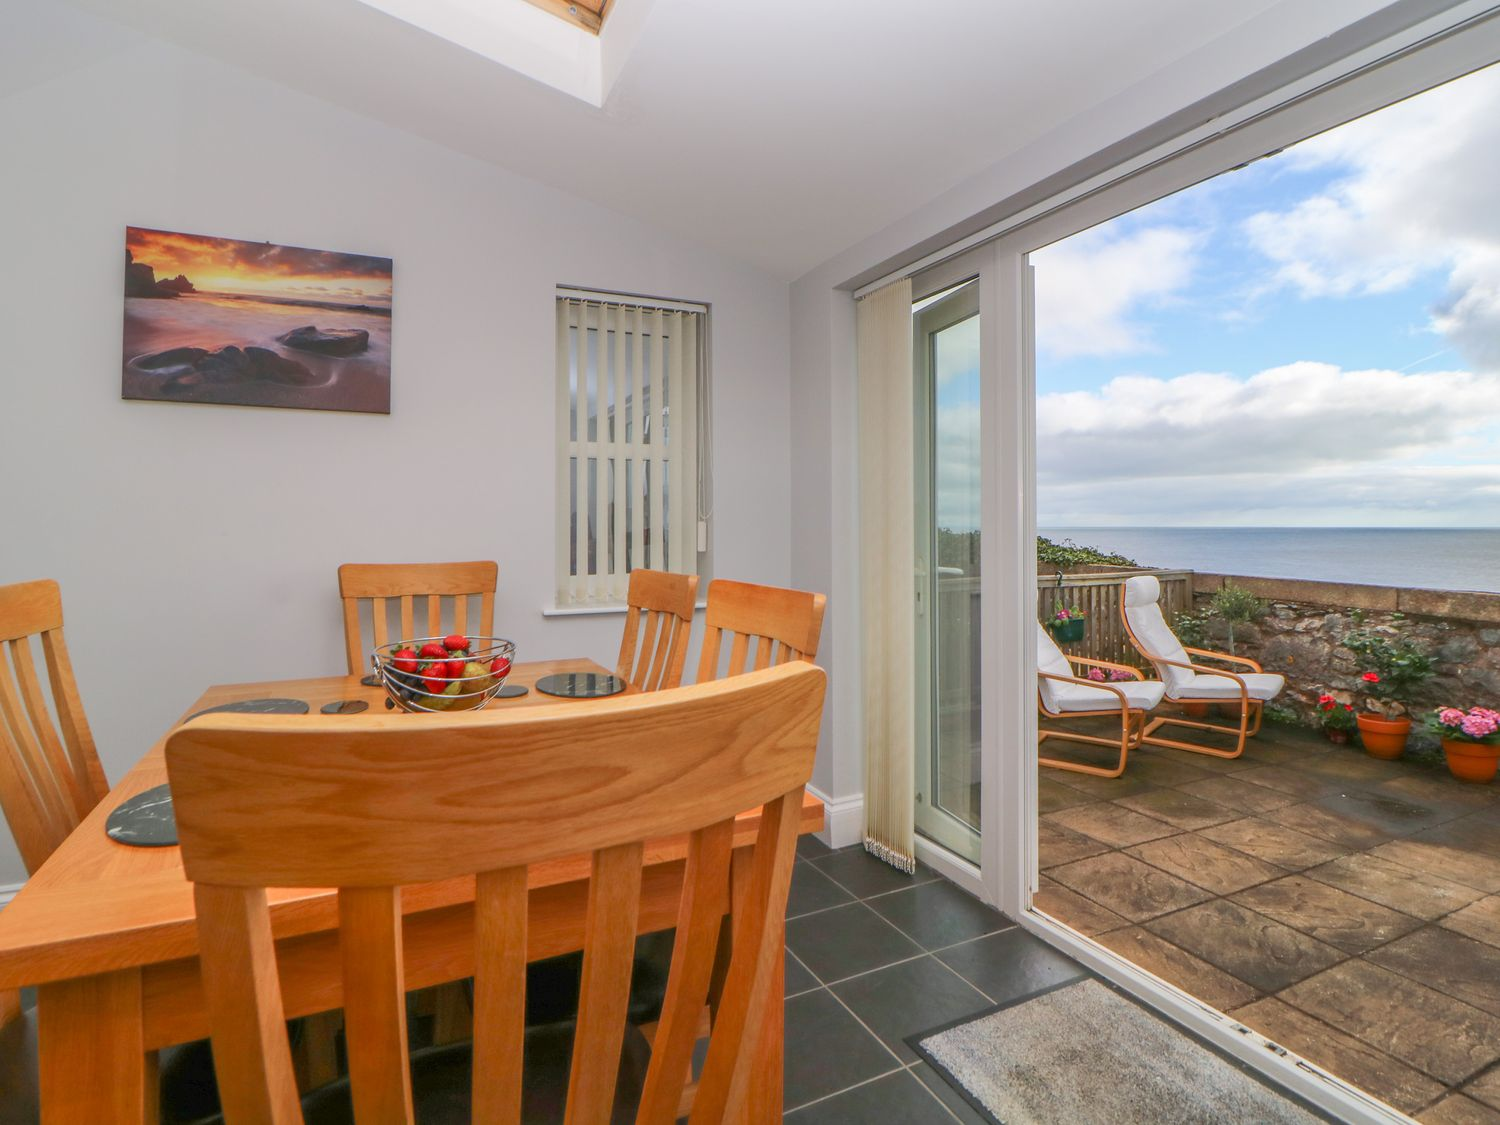 8 Coastguard Cottages in Dawlish - sleeps 6 people